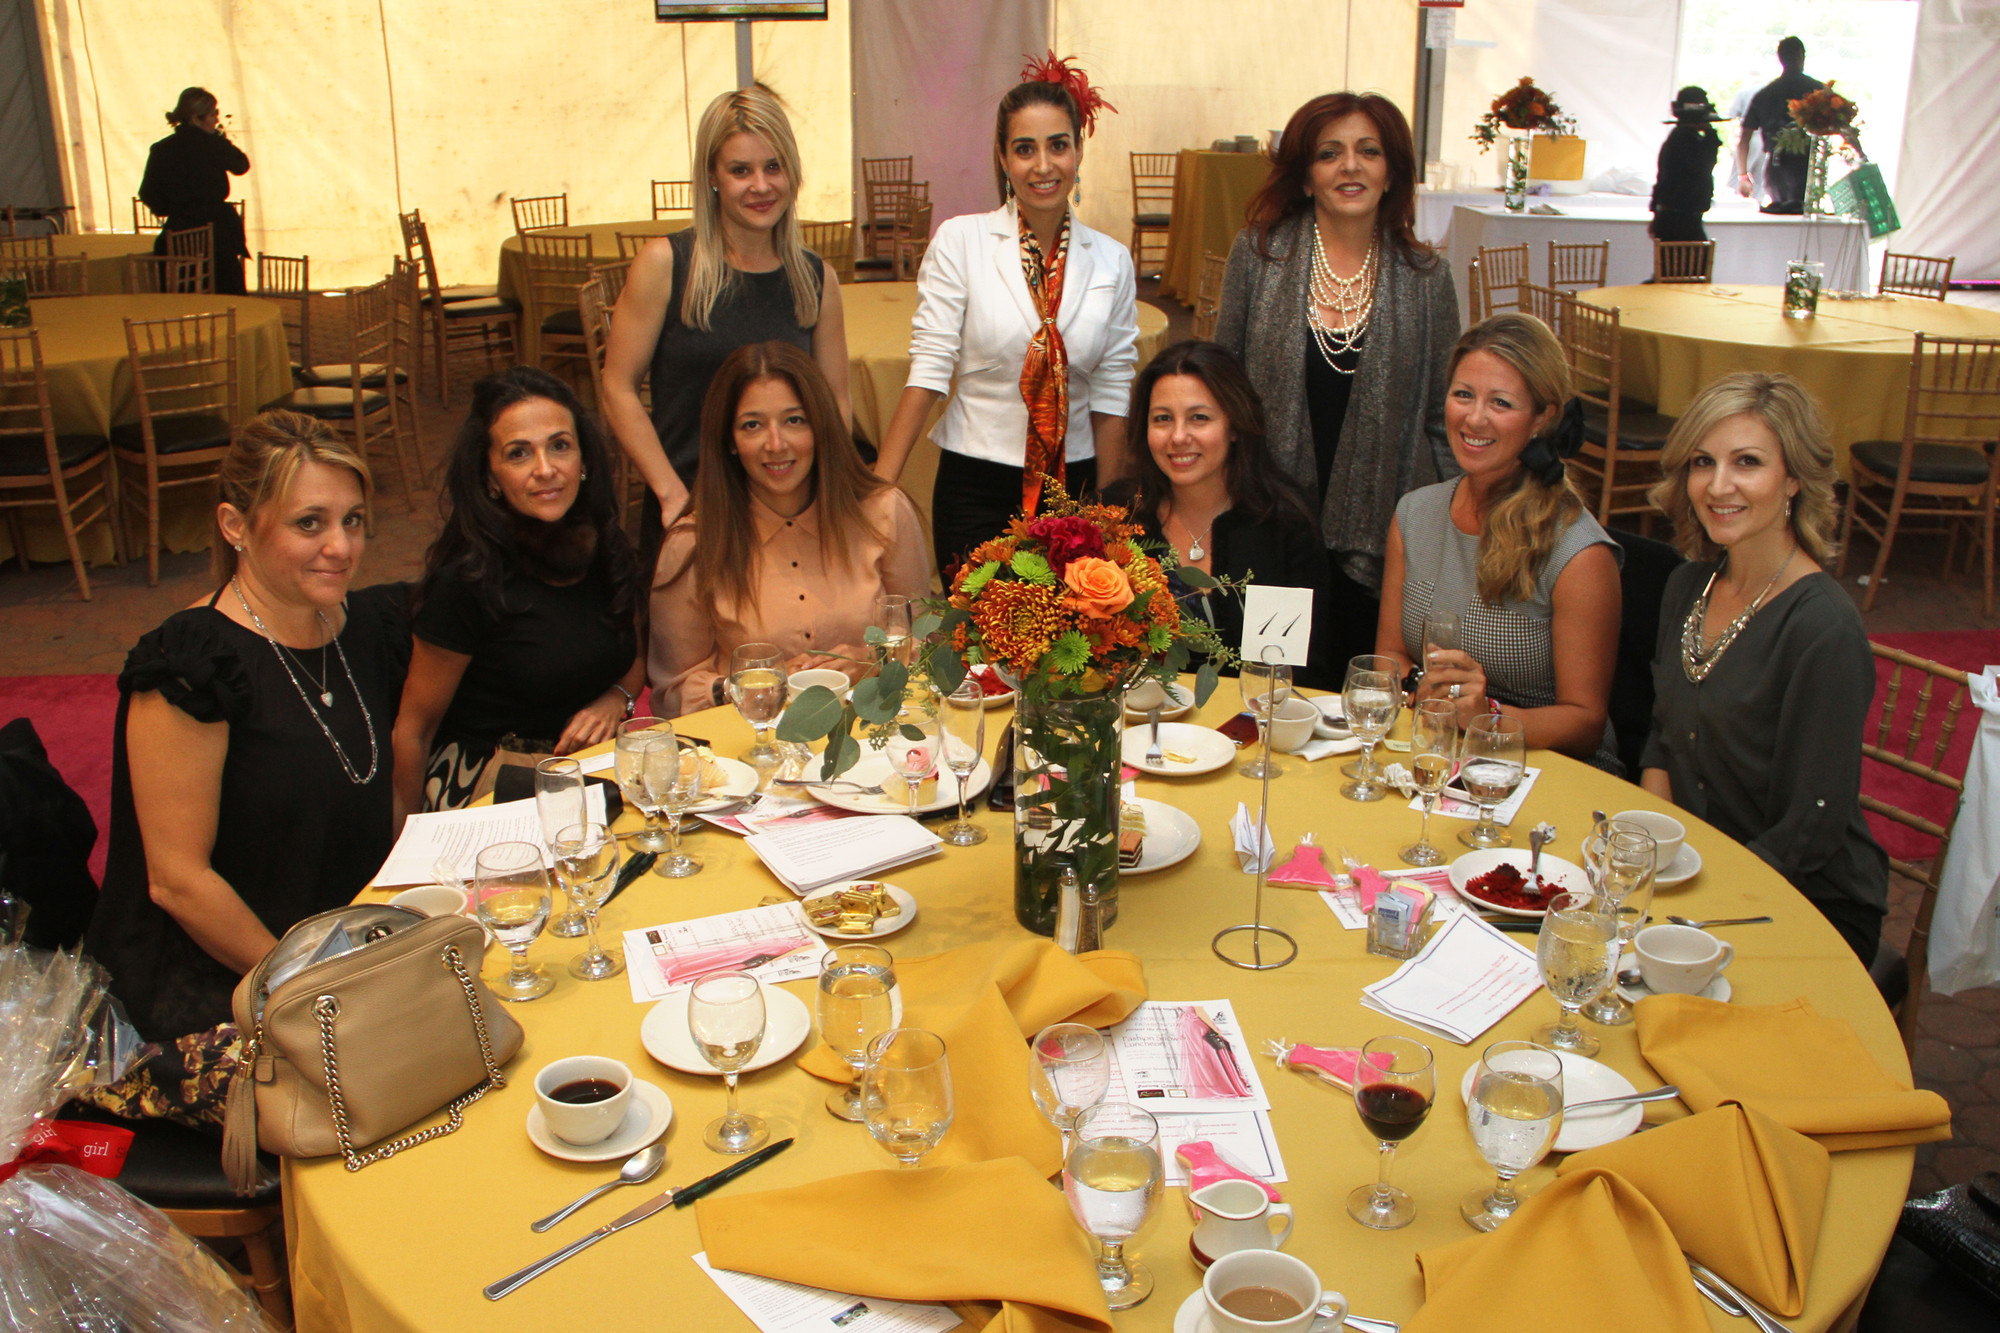 Friends Cara Williams, left, Rose Valzovano, Darcy Tabako, Cathy Bozzonu, Lisa Oliveri, Nicole Nichols, Stefanie Lazzinaro, Donna Messina and Natalia Messina shared an afternoon of fun at the fashion show sponsored by the Belmont Child Care Association.